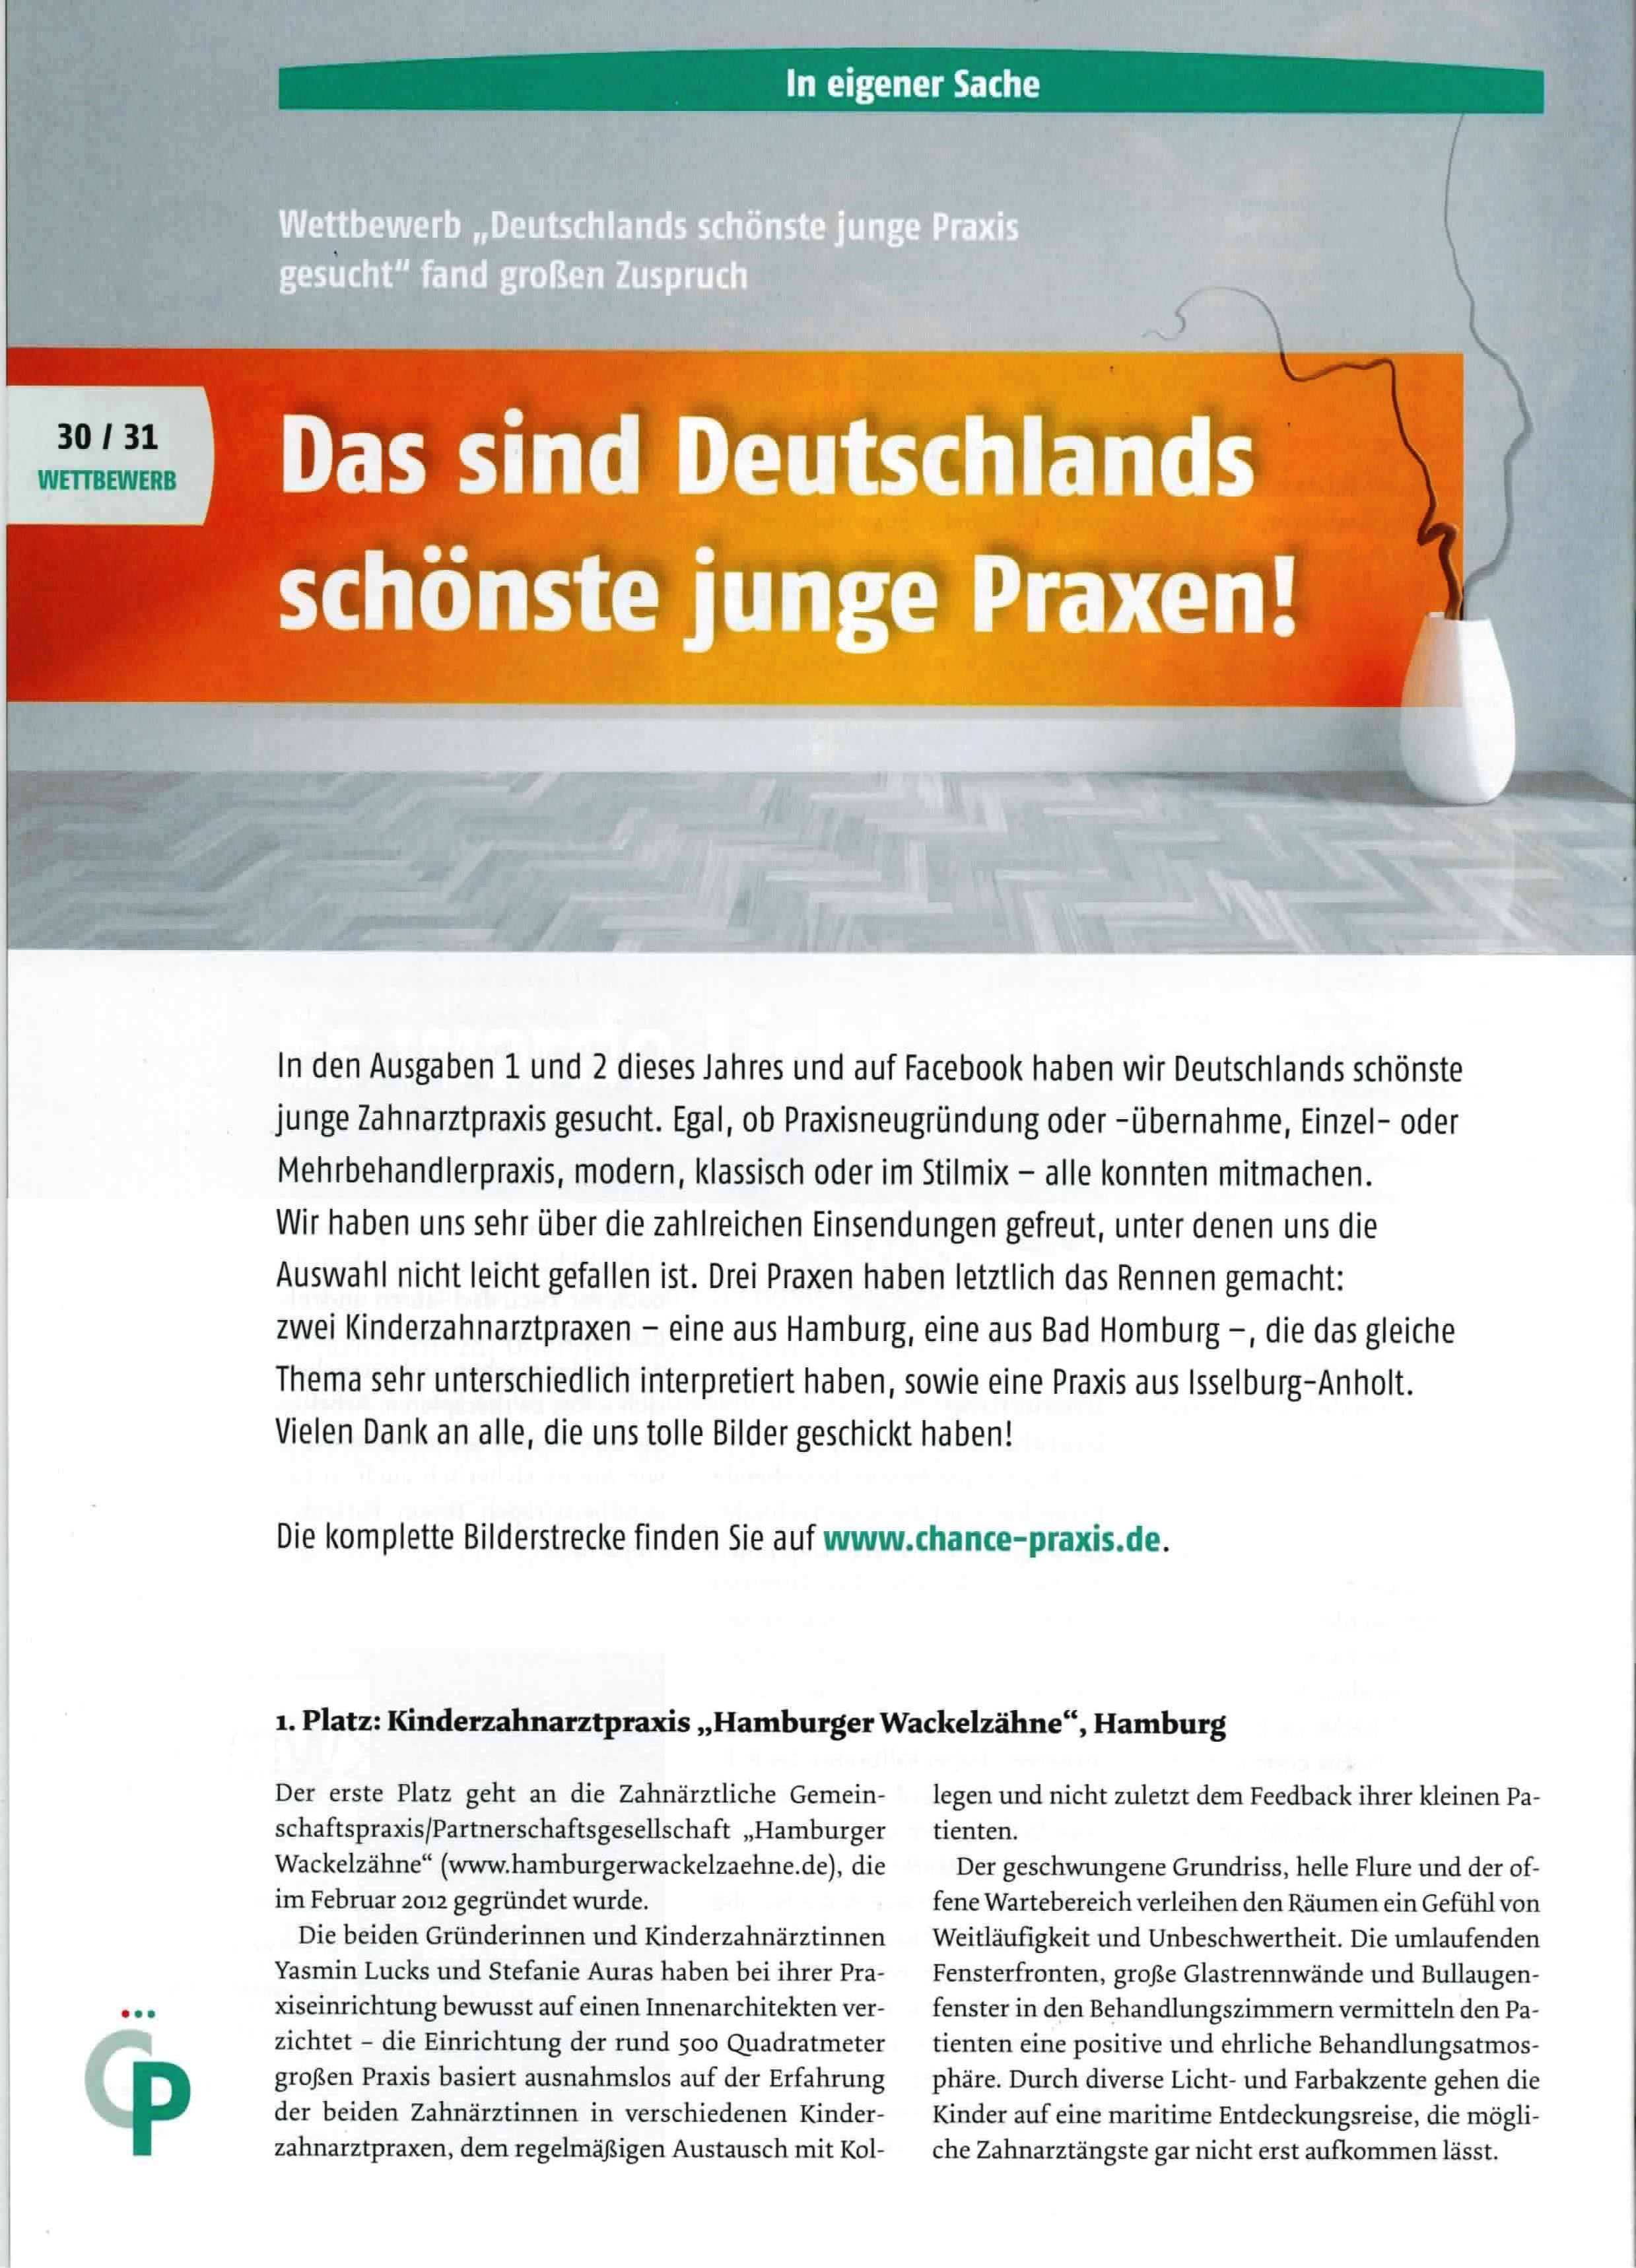 The most beautiful young dentist clinic in Germany: Chance Praxis - Article Page 2